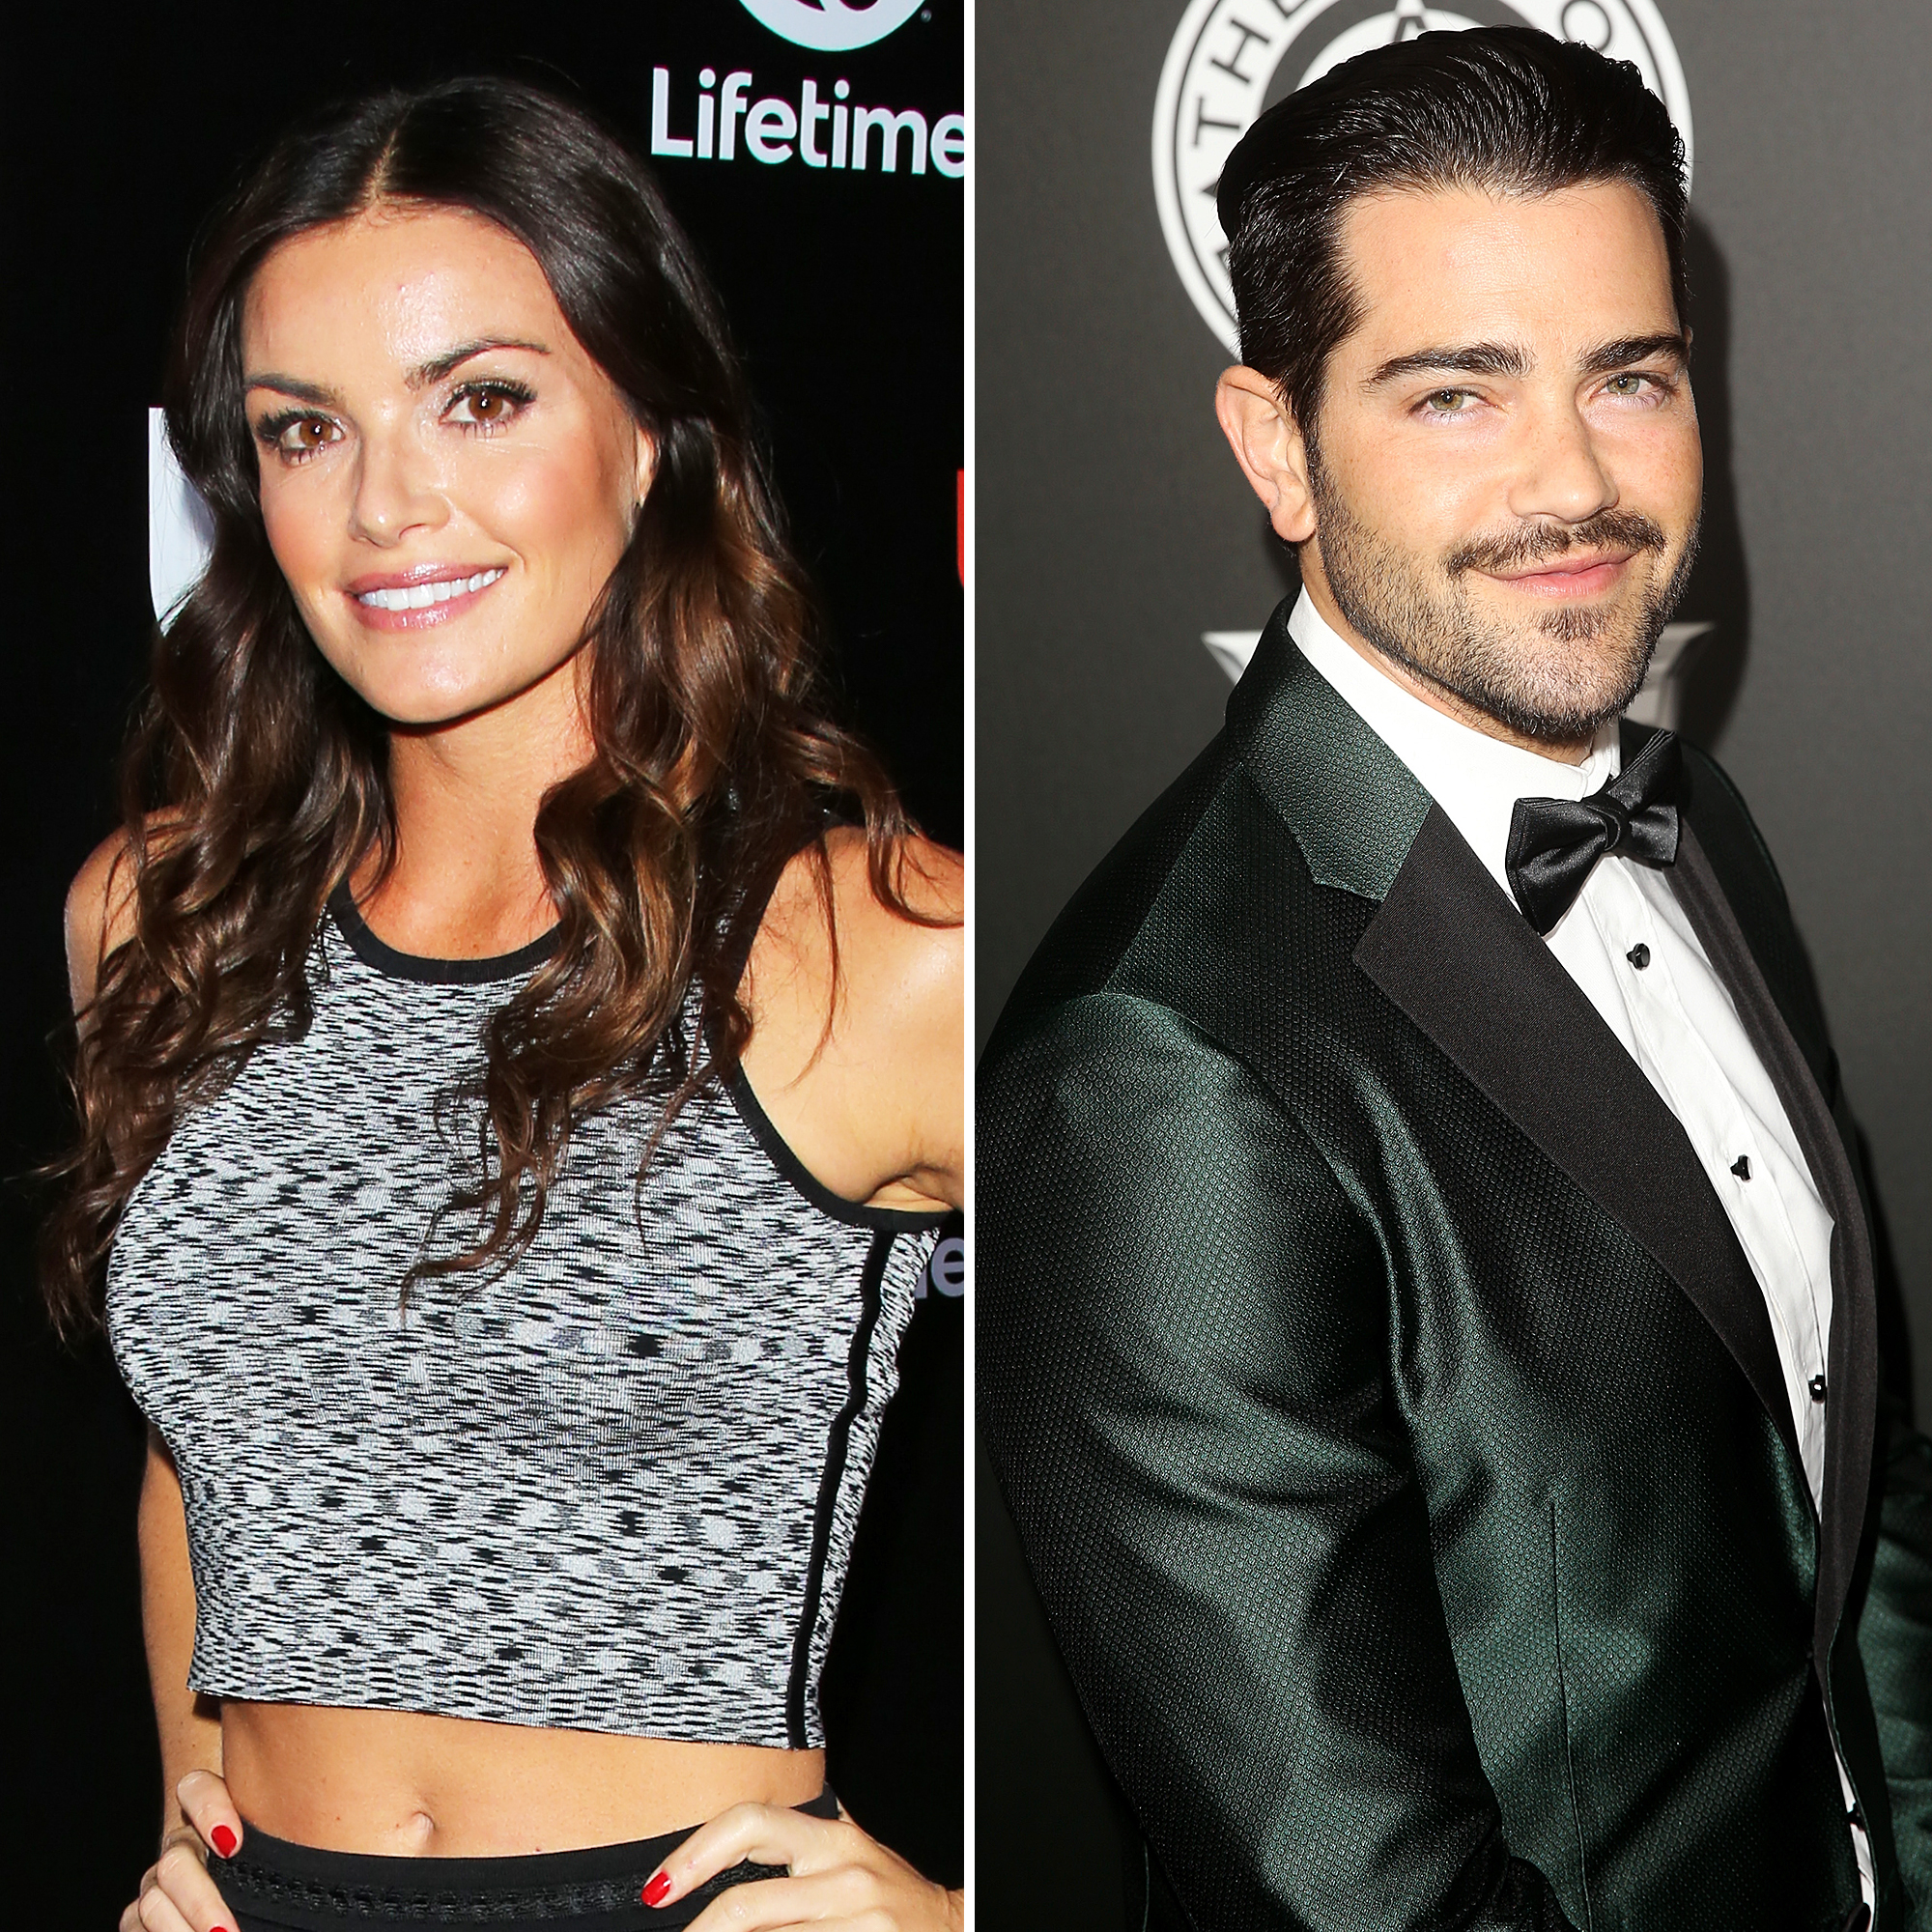 who is ben from the bachelor dating now 2013